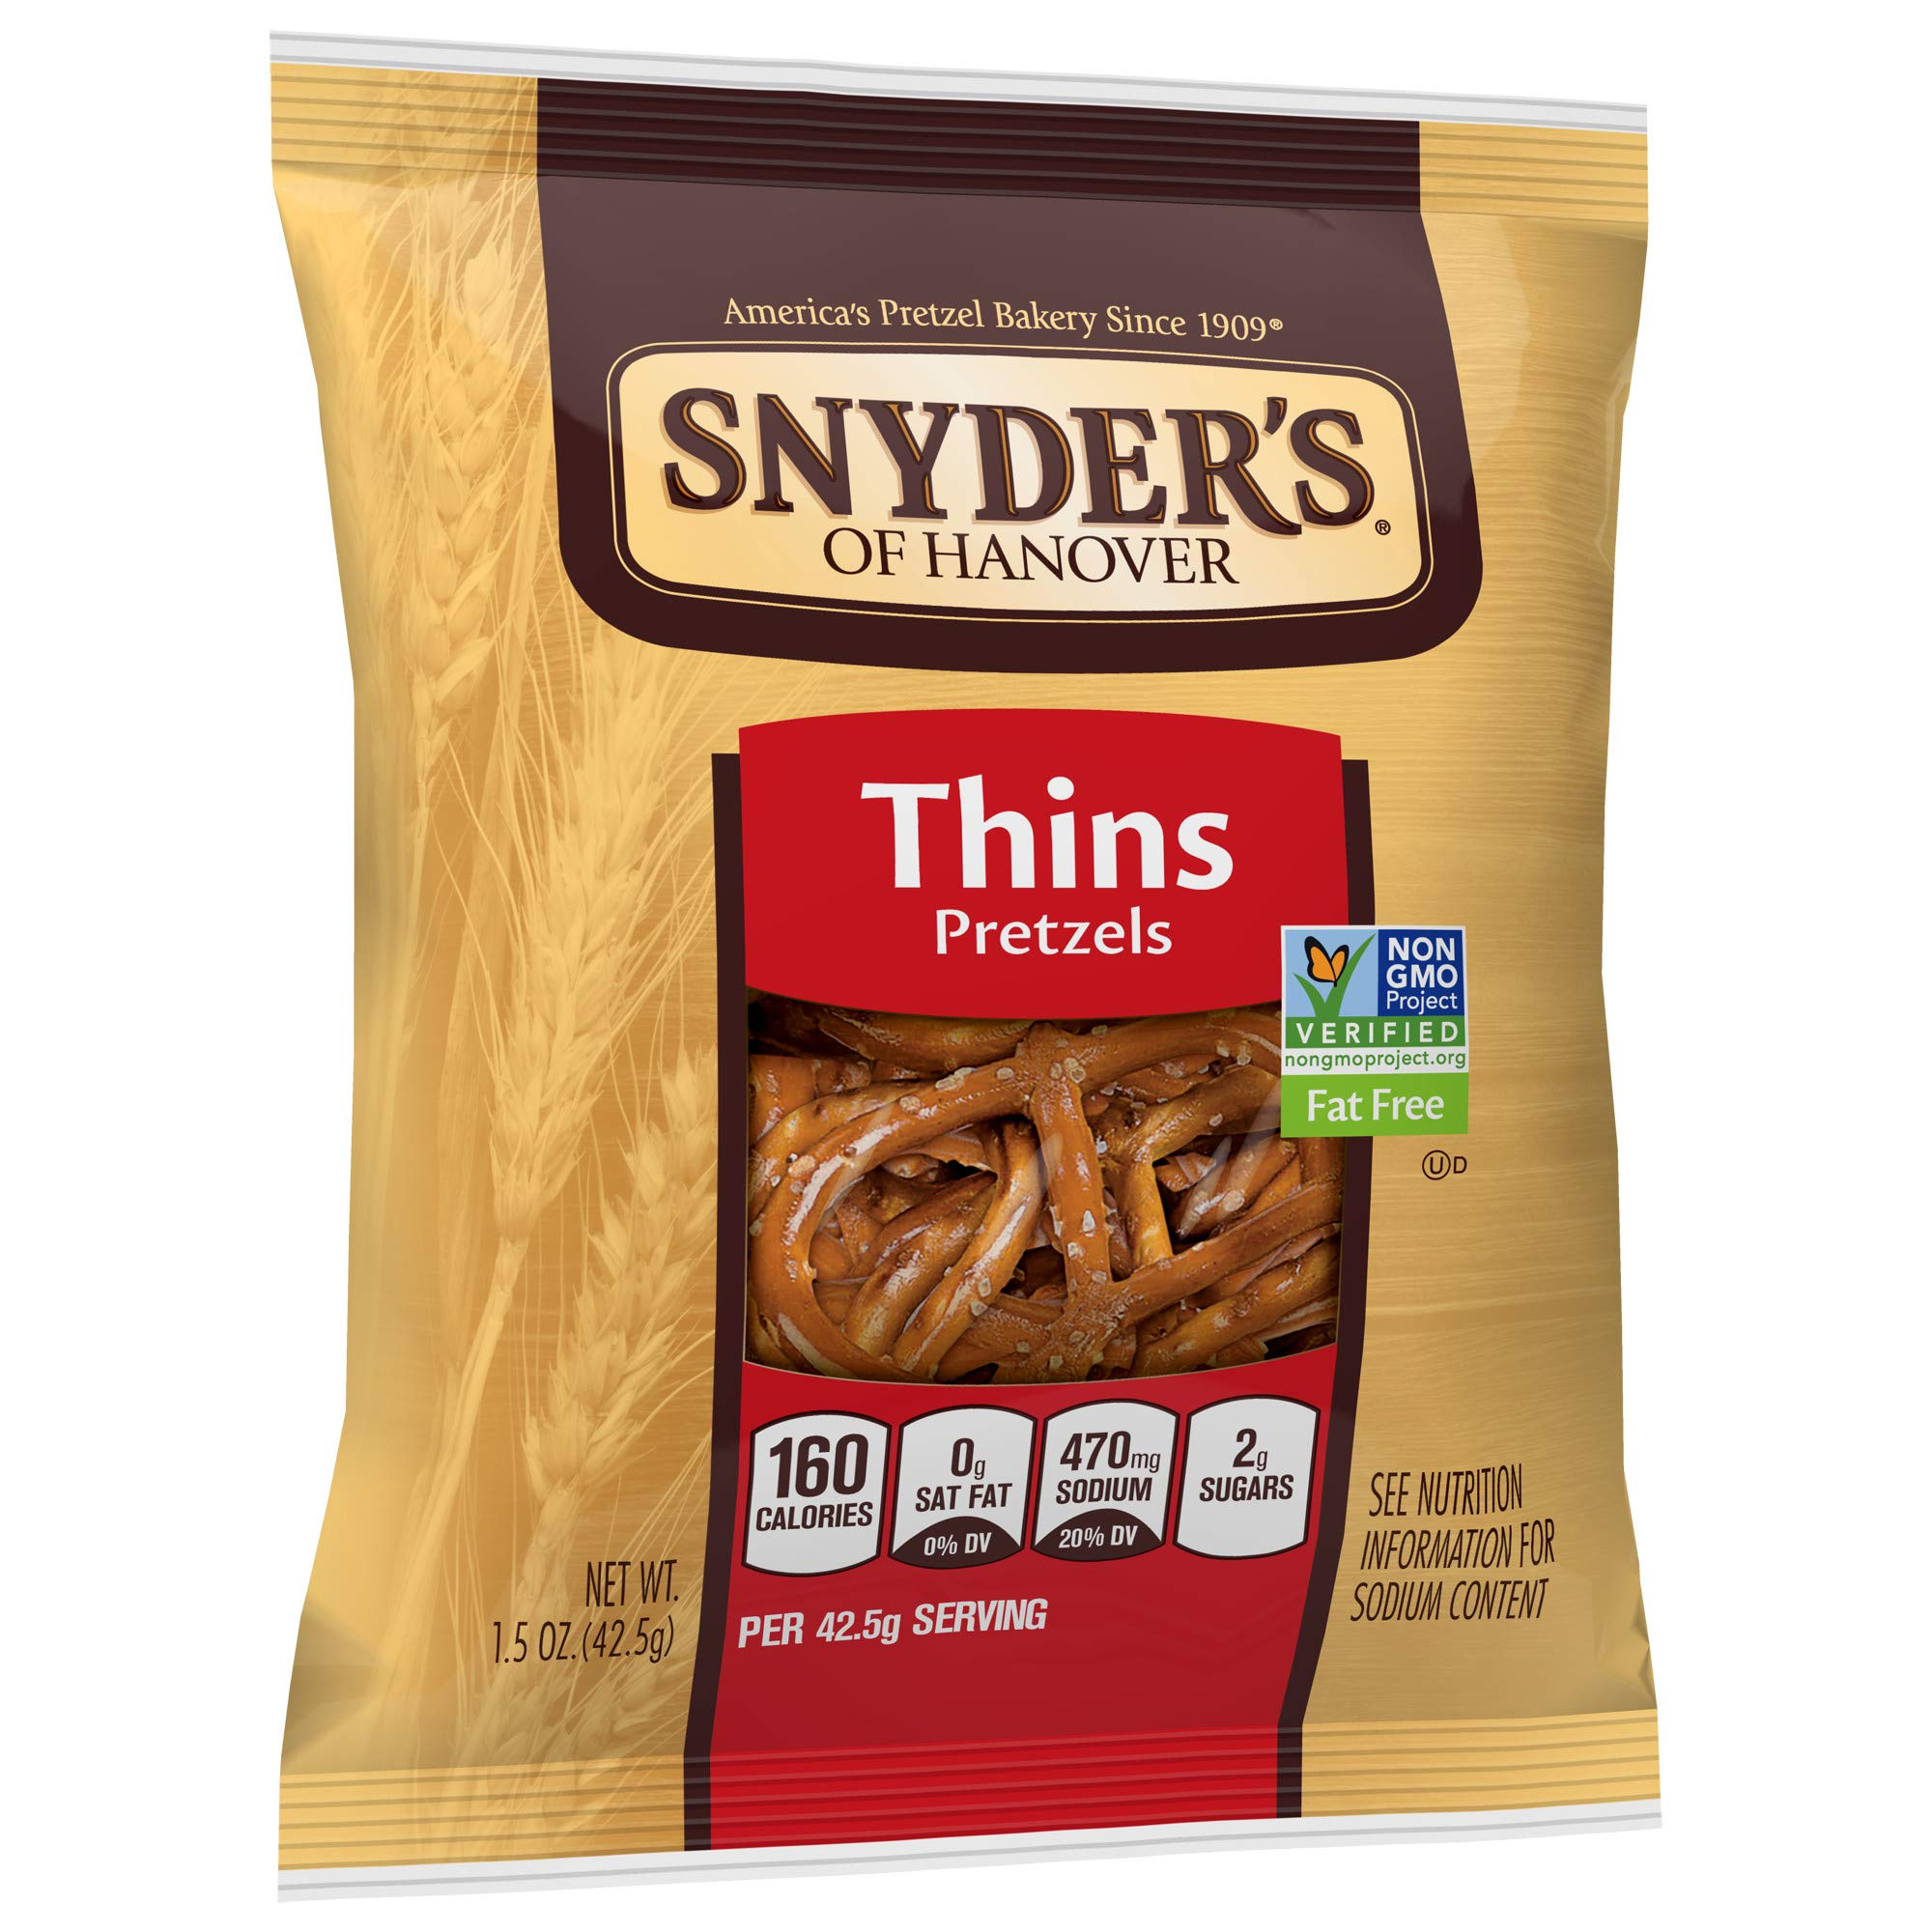 Snyder's of Hanover Pretzels, Thins, Single-Serve 1.5 Ounce (Pack of 60) by Snyder's of Hanover (Image #5)